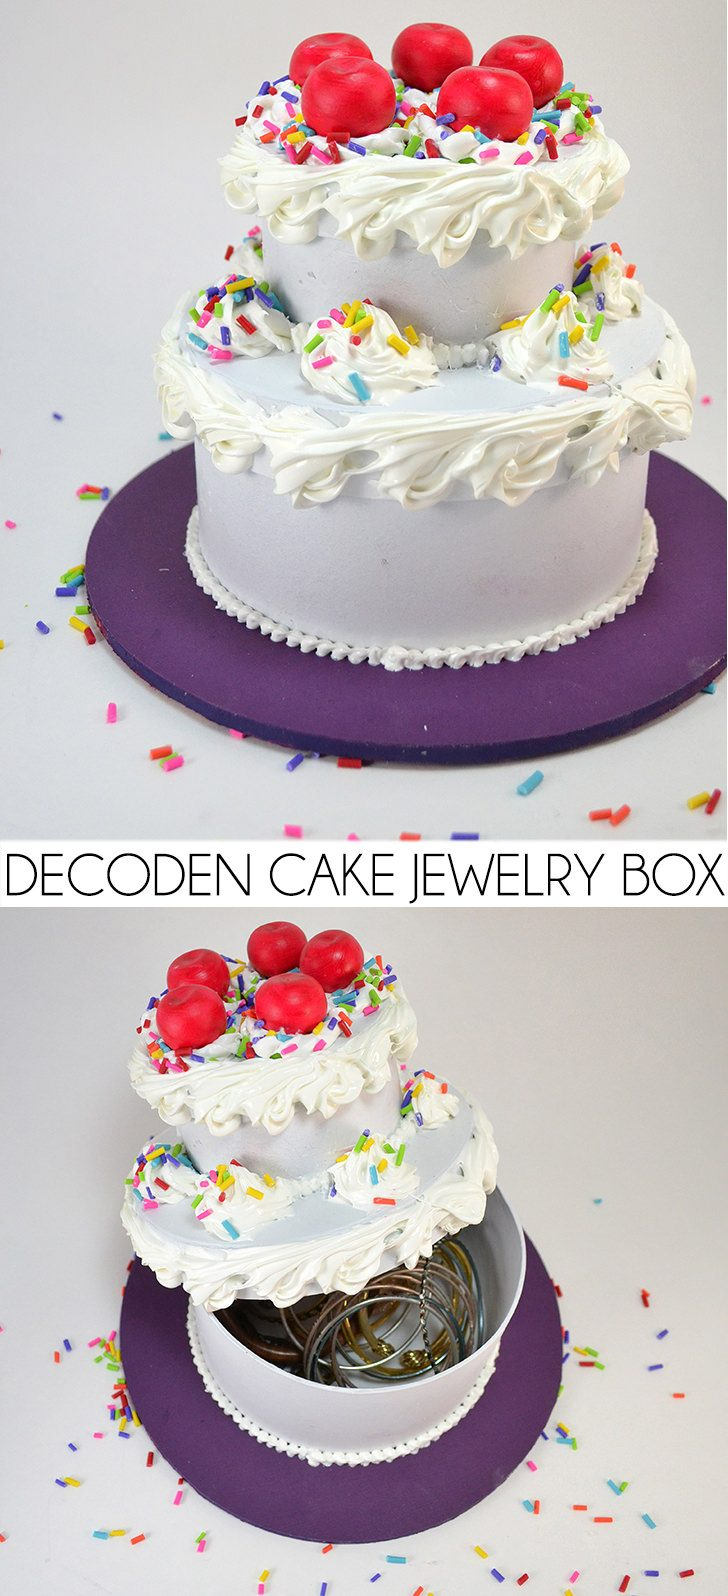 Silicone caulk decoden turns paper mache boxes into an awesome fake cake jewelry box! Get the full tutorial...